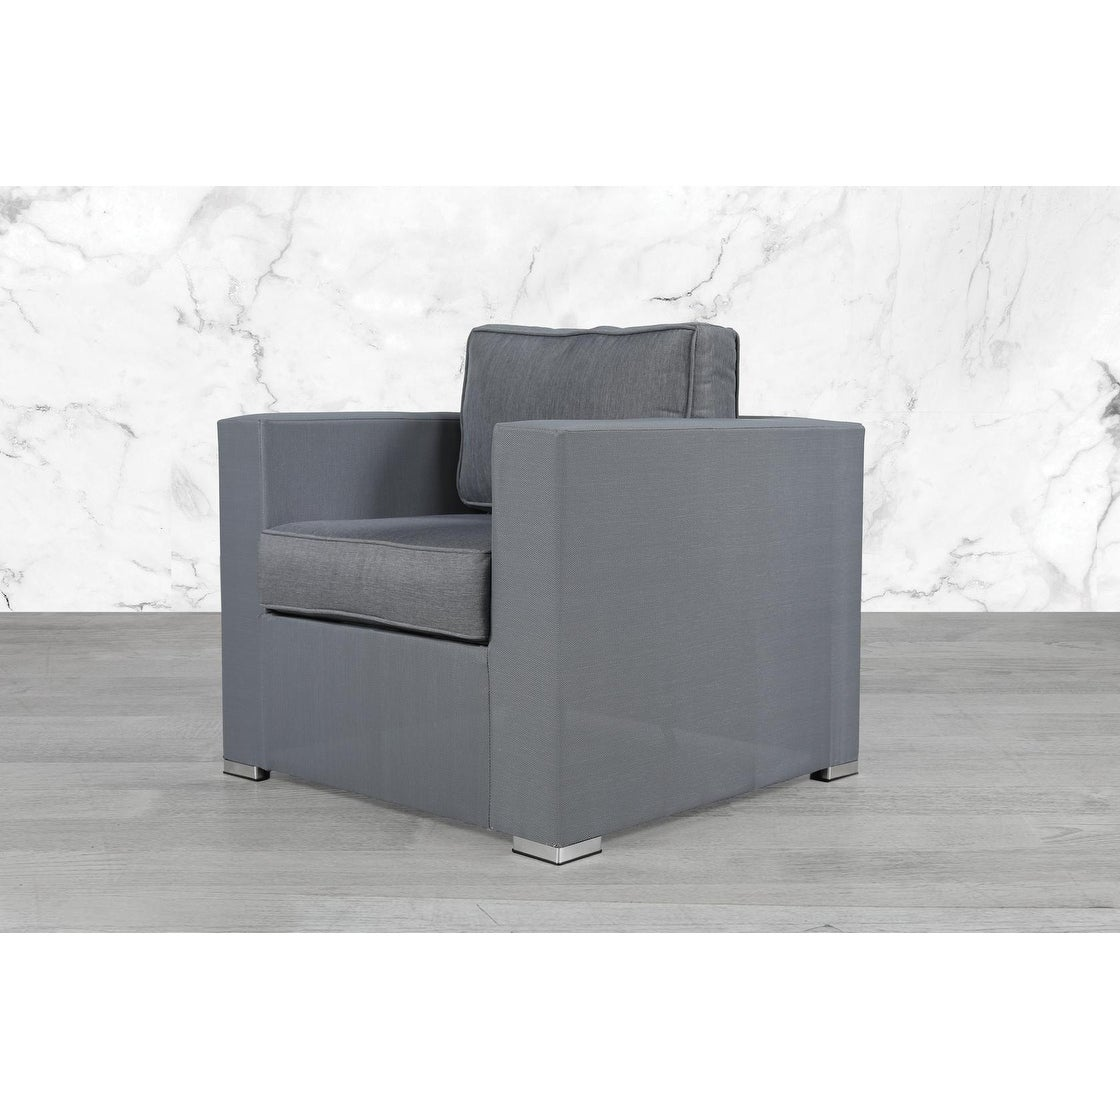 3 Piece Seating Group With Cushions Overstock 27901421